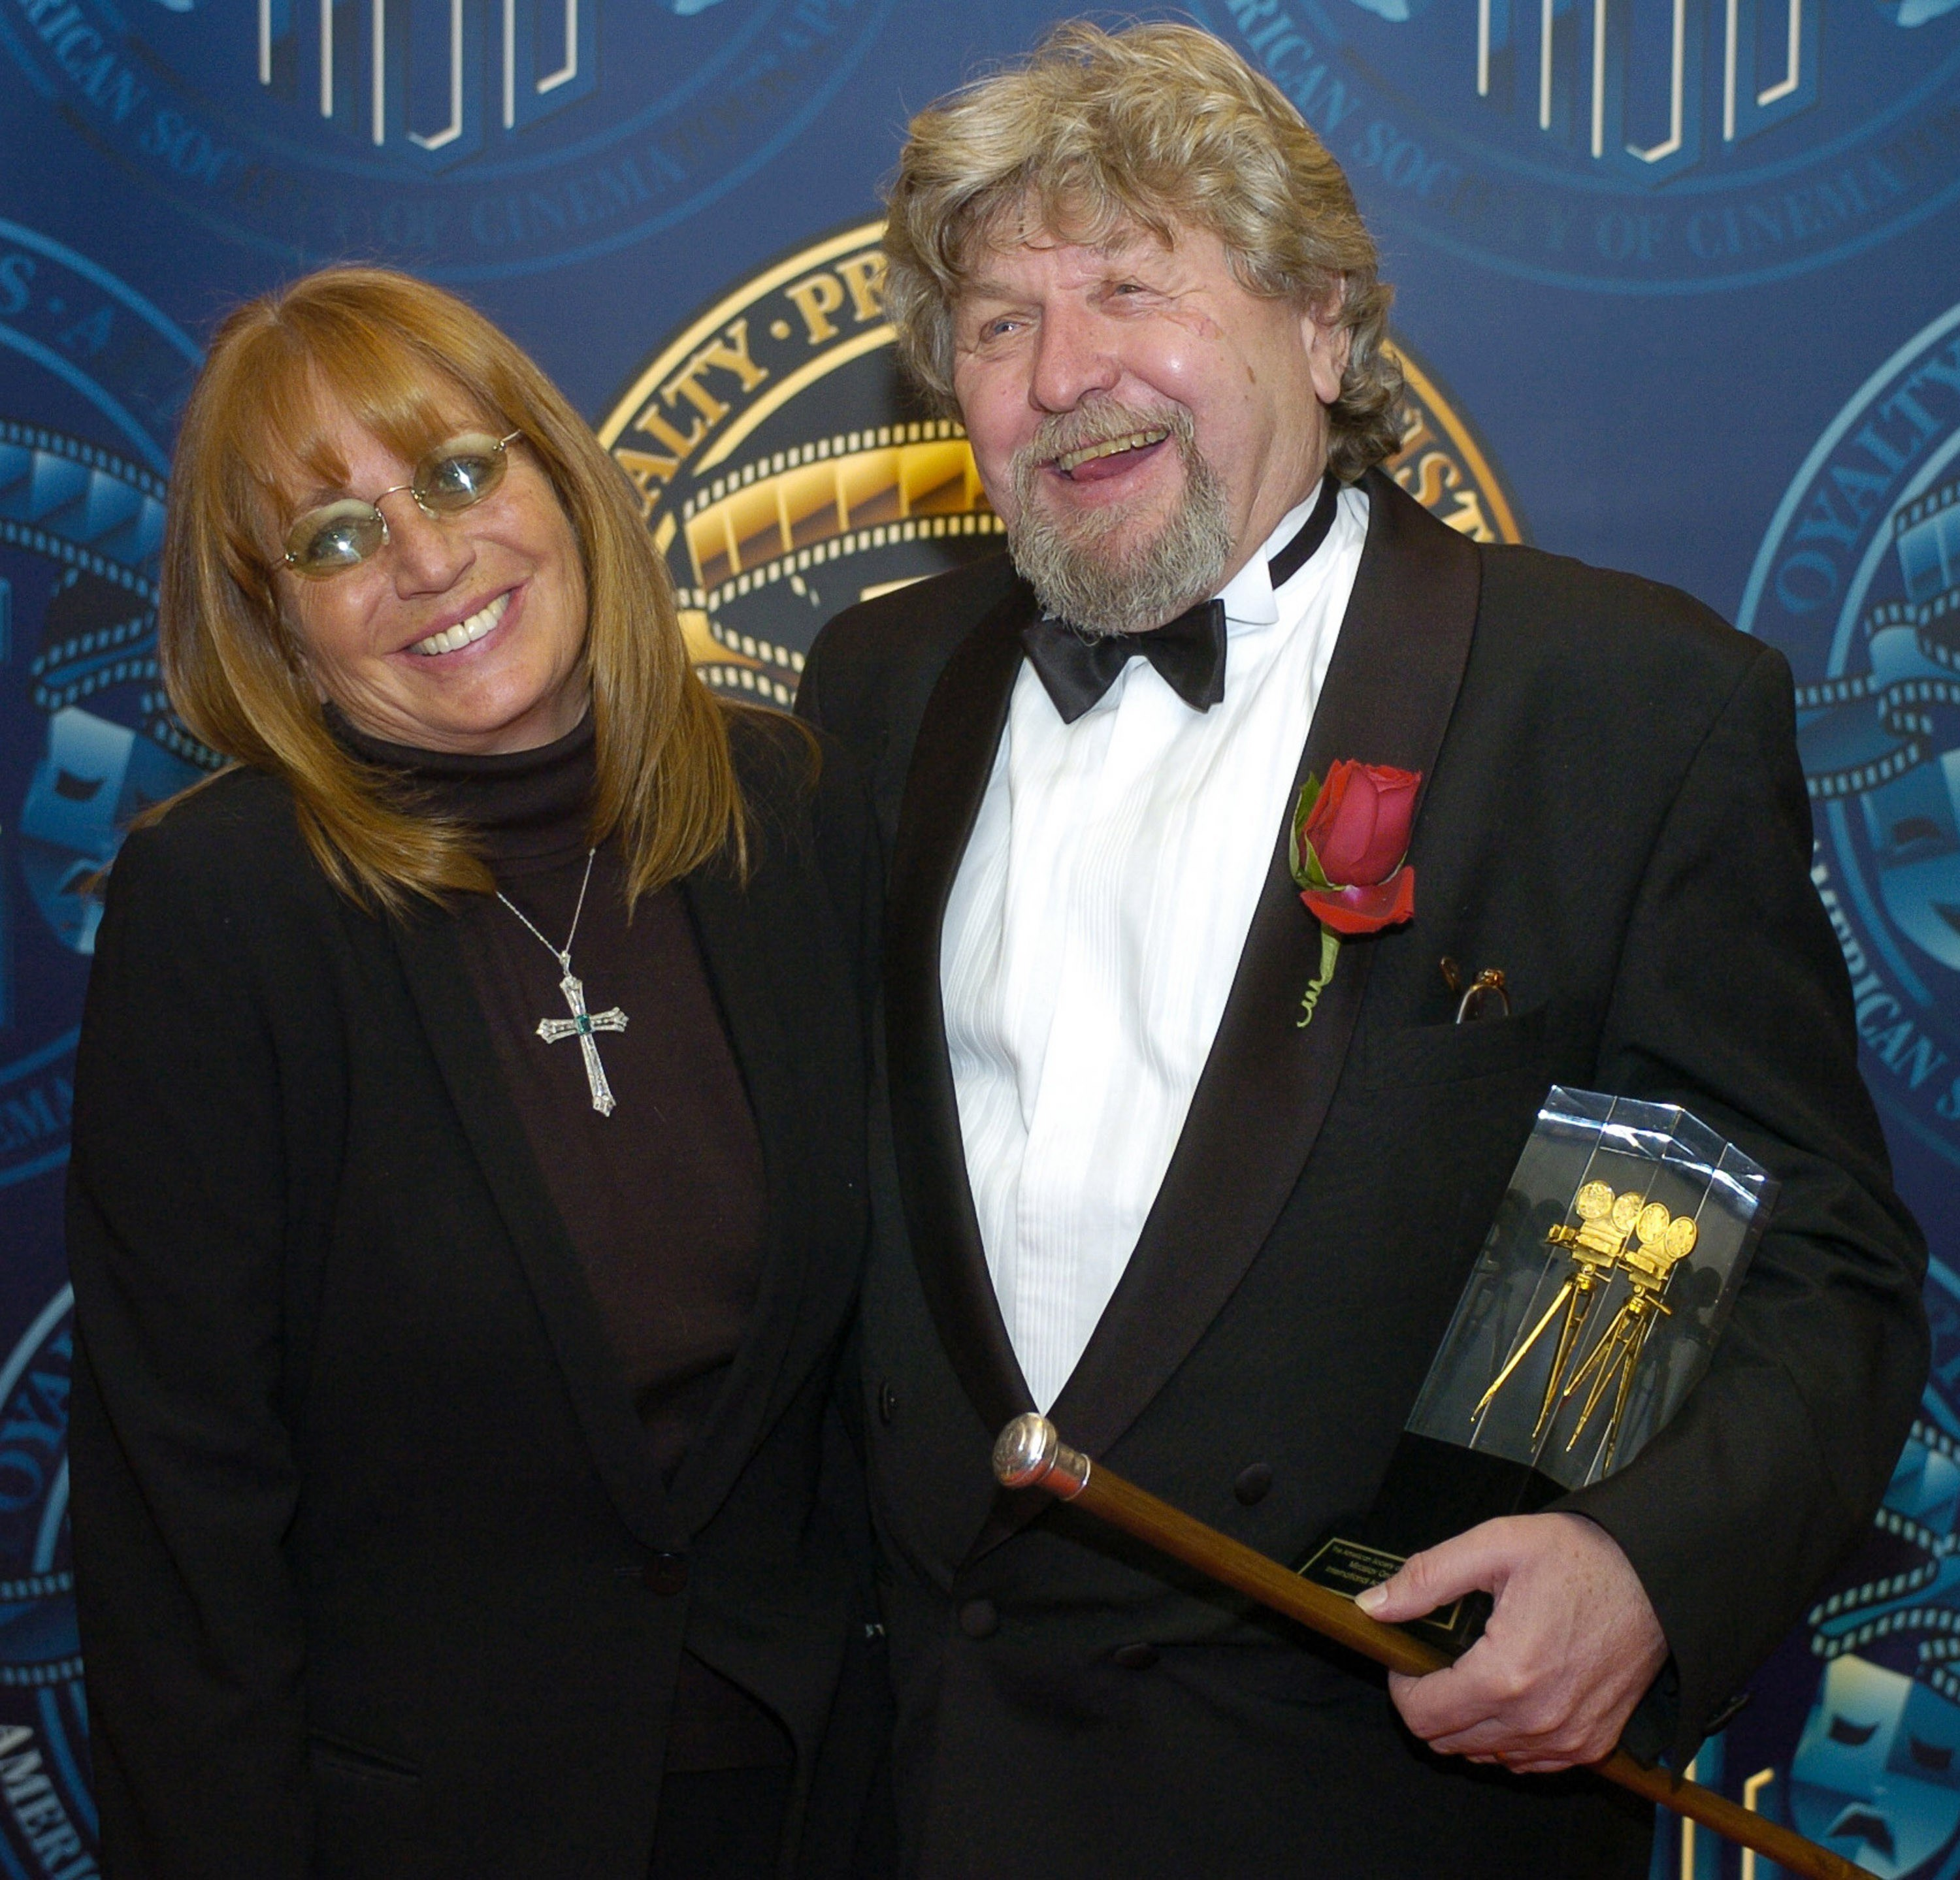 Director Penny Marshall with Ondricek at the ASC Awards in 2004. (Credit: ASC Archives)